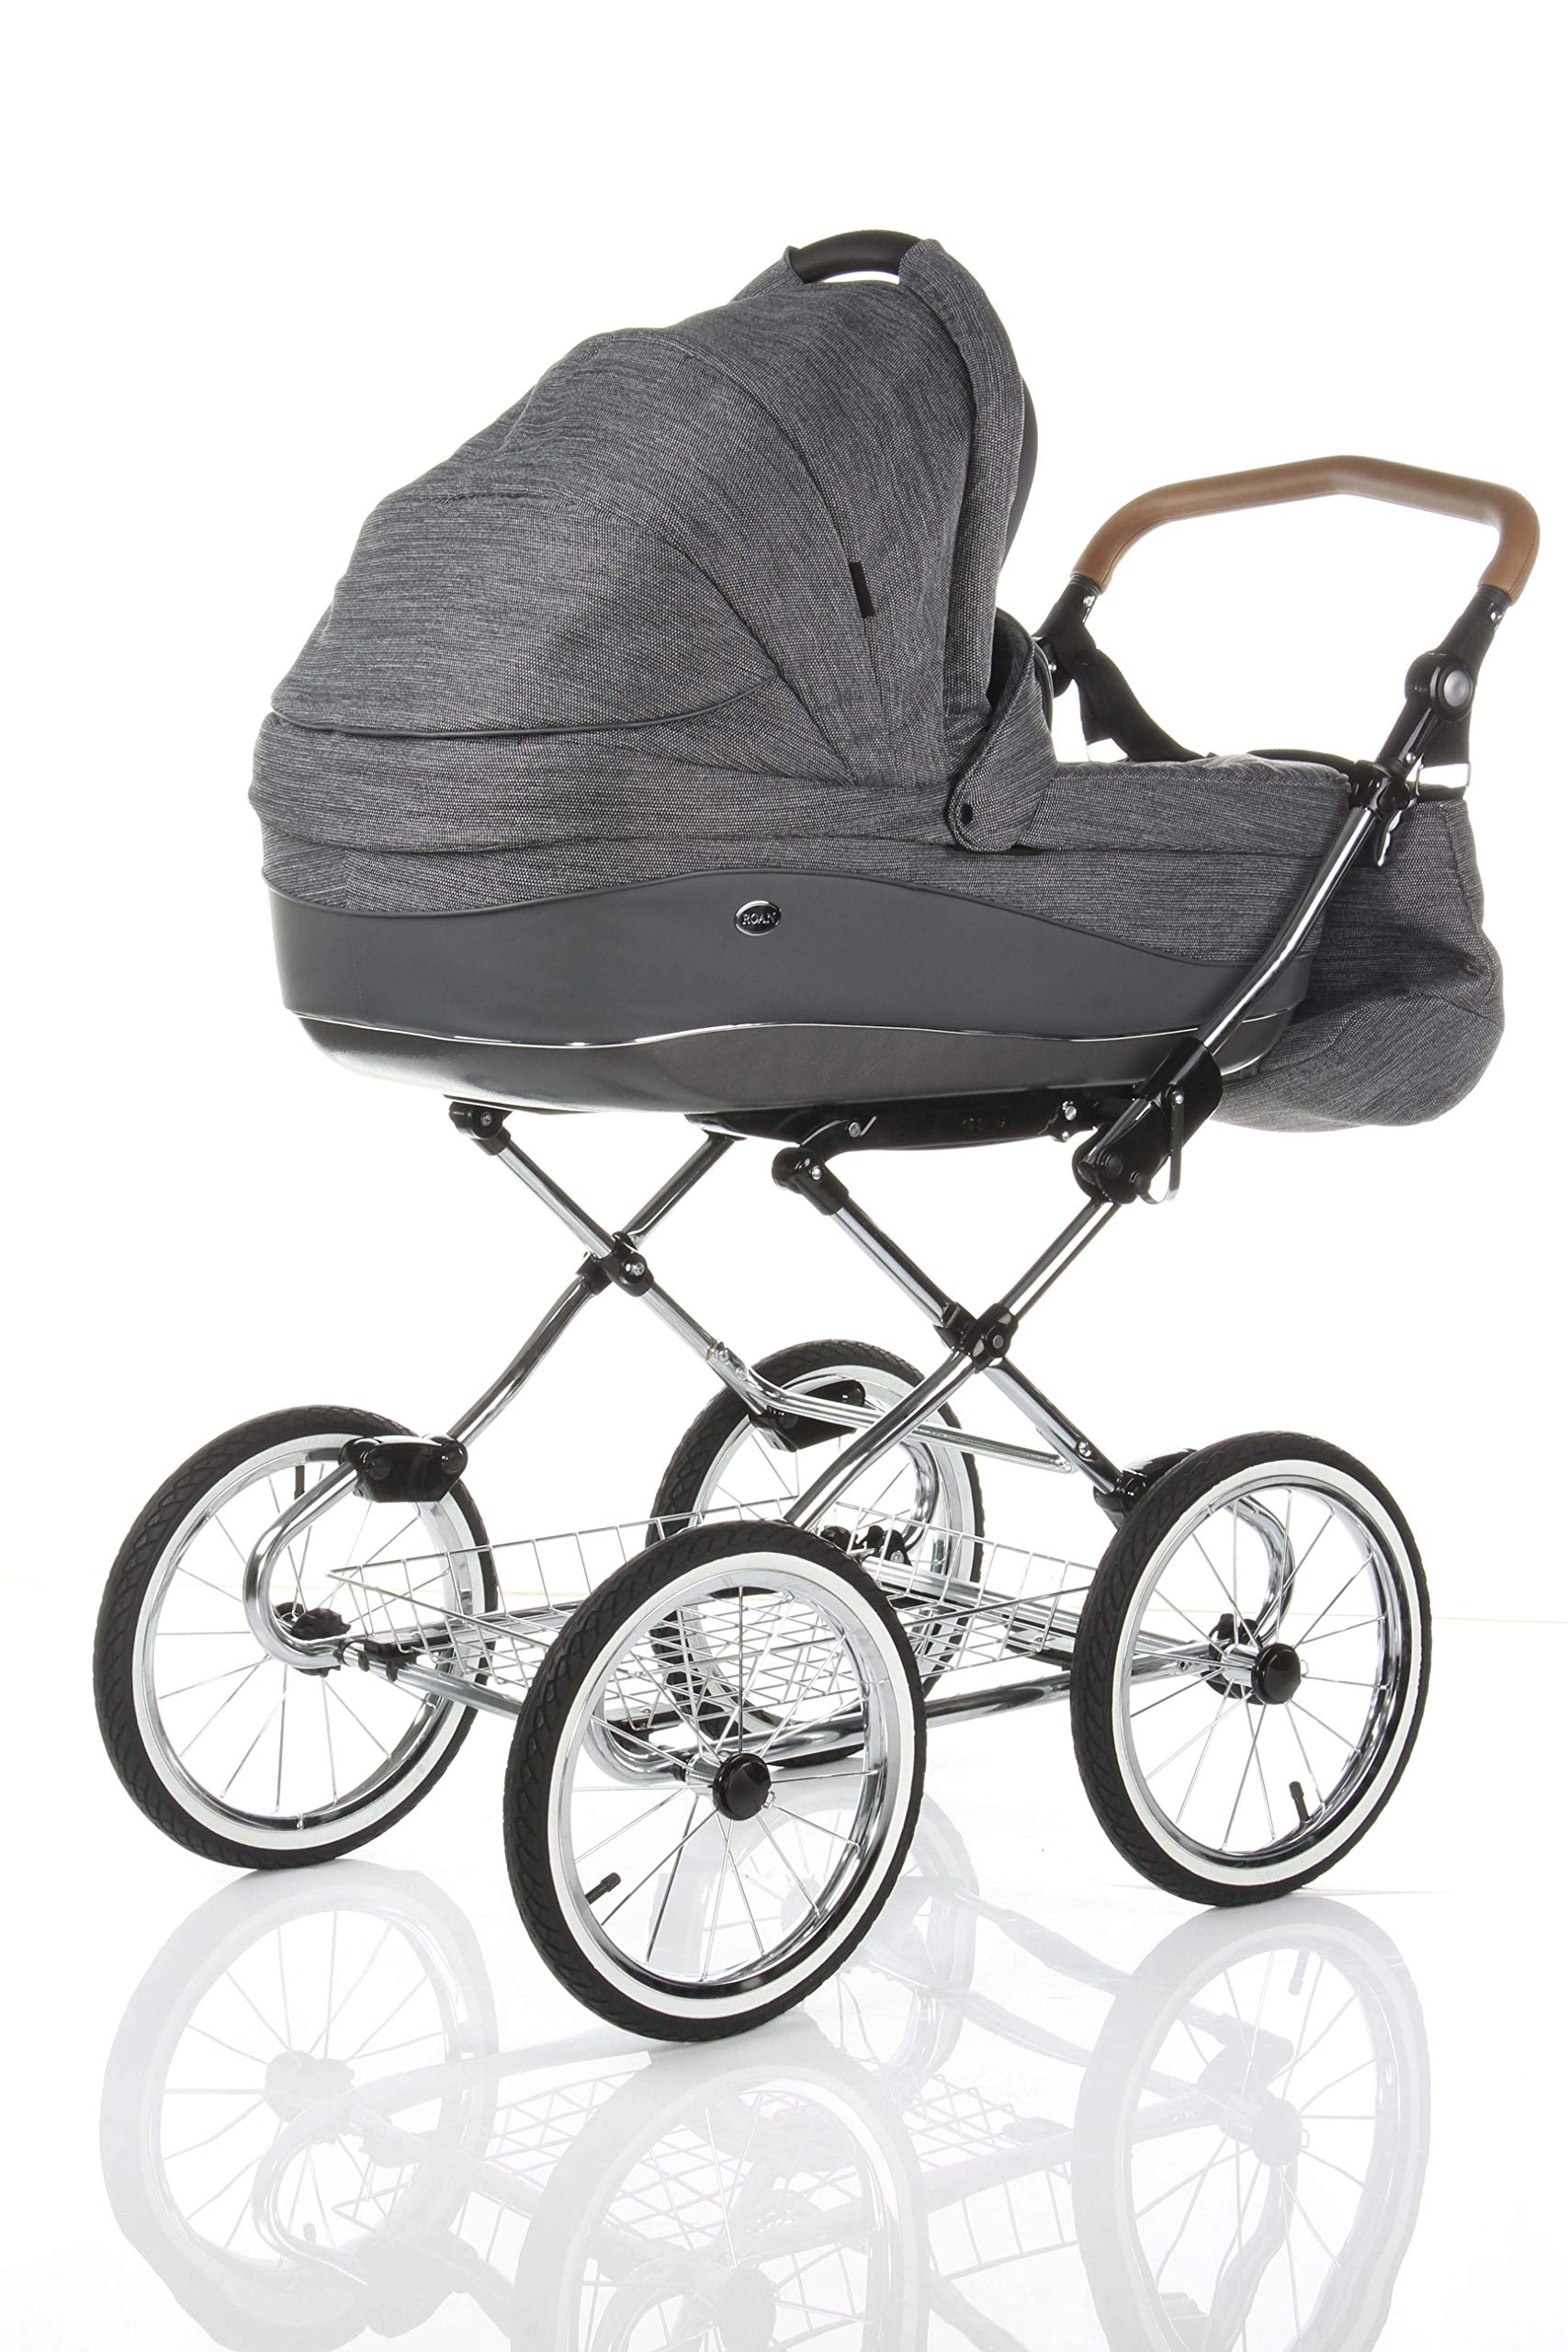 Children's Pram Buggy Stroller Combination Car seat Classic Retro Baby Carrier ROAN Emma (E-81 Dark Grey Melange-Grey Leather, 2IN1) JUNAMA Frame / wheels Sturdy and lightweight aluminum frame construction with folding function 1-click system for easy assembly and disassembly Practical carrying handle for easy storage of the folded frame Wheels for inflating (14 inch) removable wheels Brake system with central brake Height-adjustable push handle - 10-fold matching shopping basket Dimensions folded with wheels: 86 x 60 x 40 cm folded without wheels: 76 x 60 x 26 cm Total height of the stroller to hood top: 106 cm Height of the tub from the ground: 60 cm Wheelbase External dimensions: 80x 58 cm Variable height of the push handle: 77- 119 cm Weight of the frame incl. Wheels and carrying bag 15 kg Carrycot Length and width of carrycot outside: 88 x 42 cm Carrying bag length and width inside: 76 x 35 cm Sturdy plastic tub with comfortable mattress and side protection Ventilation slots on the plastic tub The baby car seat 0-13 kg Maxi-Cosi in black incl. Adapter 4